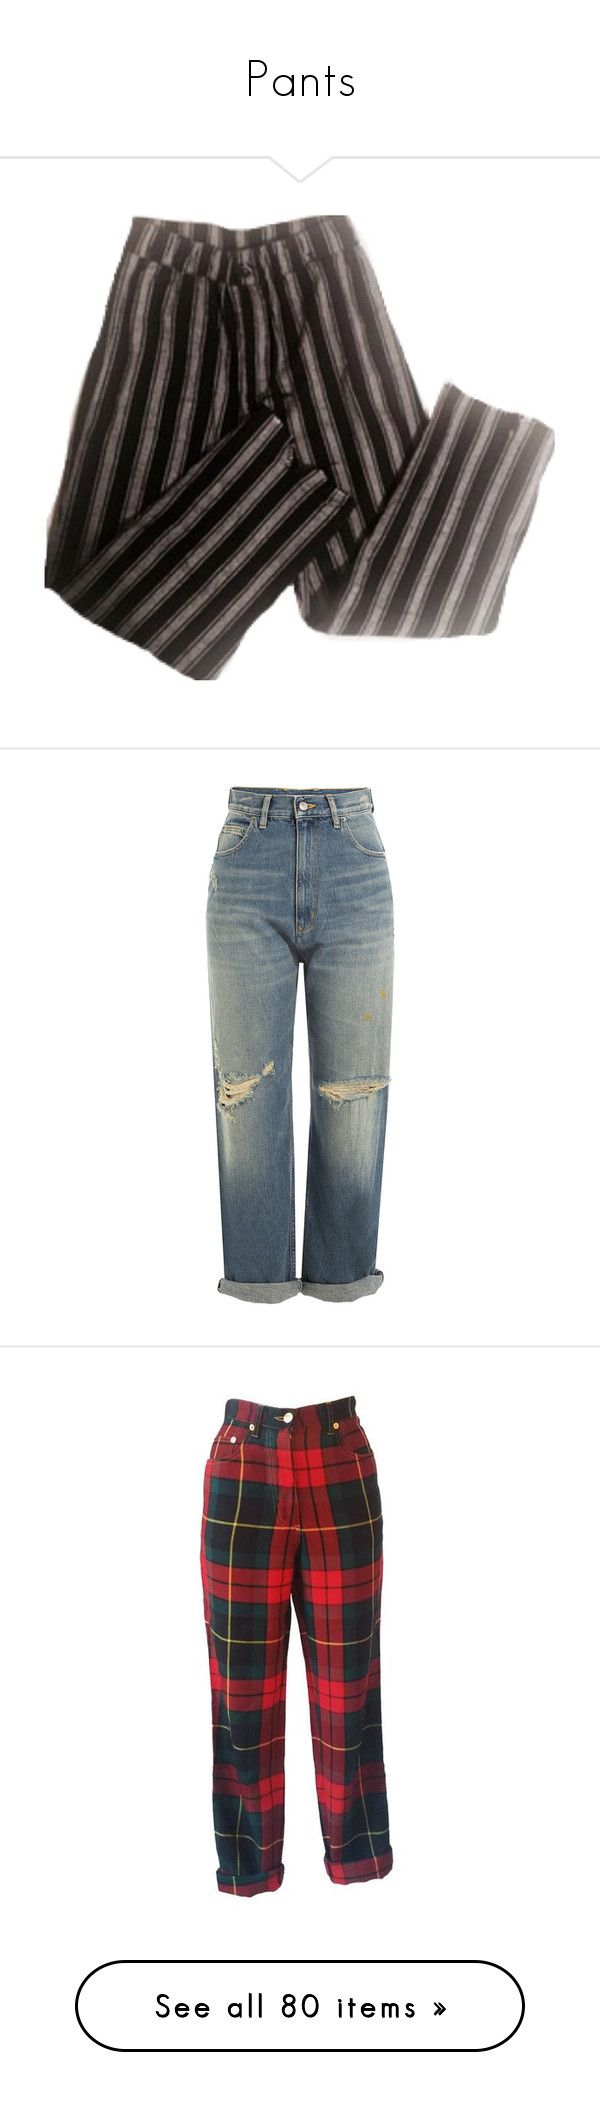 """Pants"" by sqwiish on Polyvore featuring bottoms, pants, jeans, blue, high waisted destroyed jeans, high waisted distressed jeans, cropped jeans, high waisted cropped jeans, high rise cropped jeans and moschino"